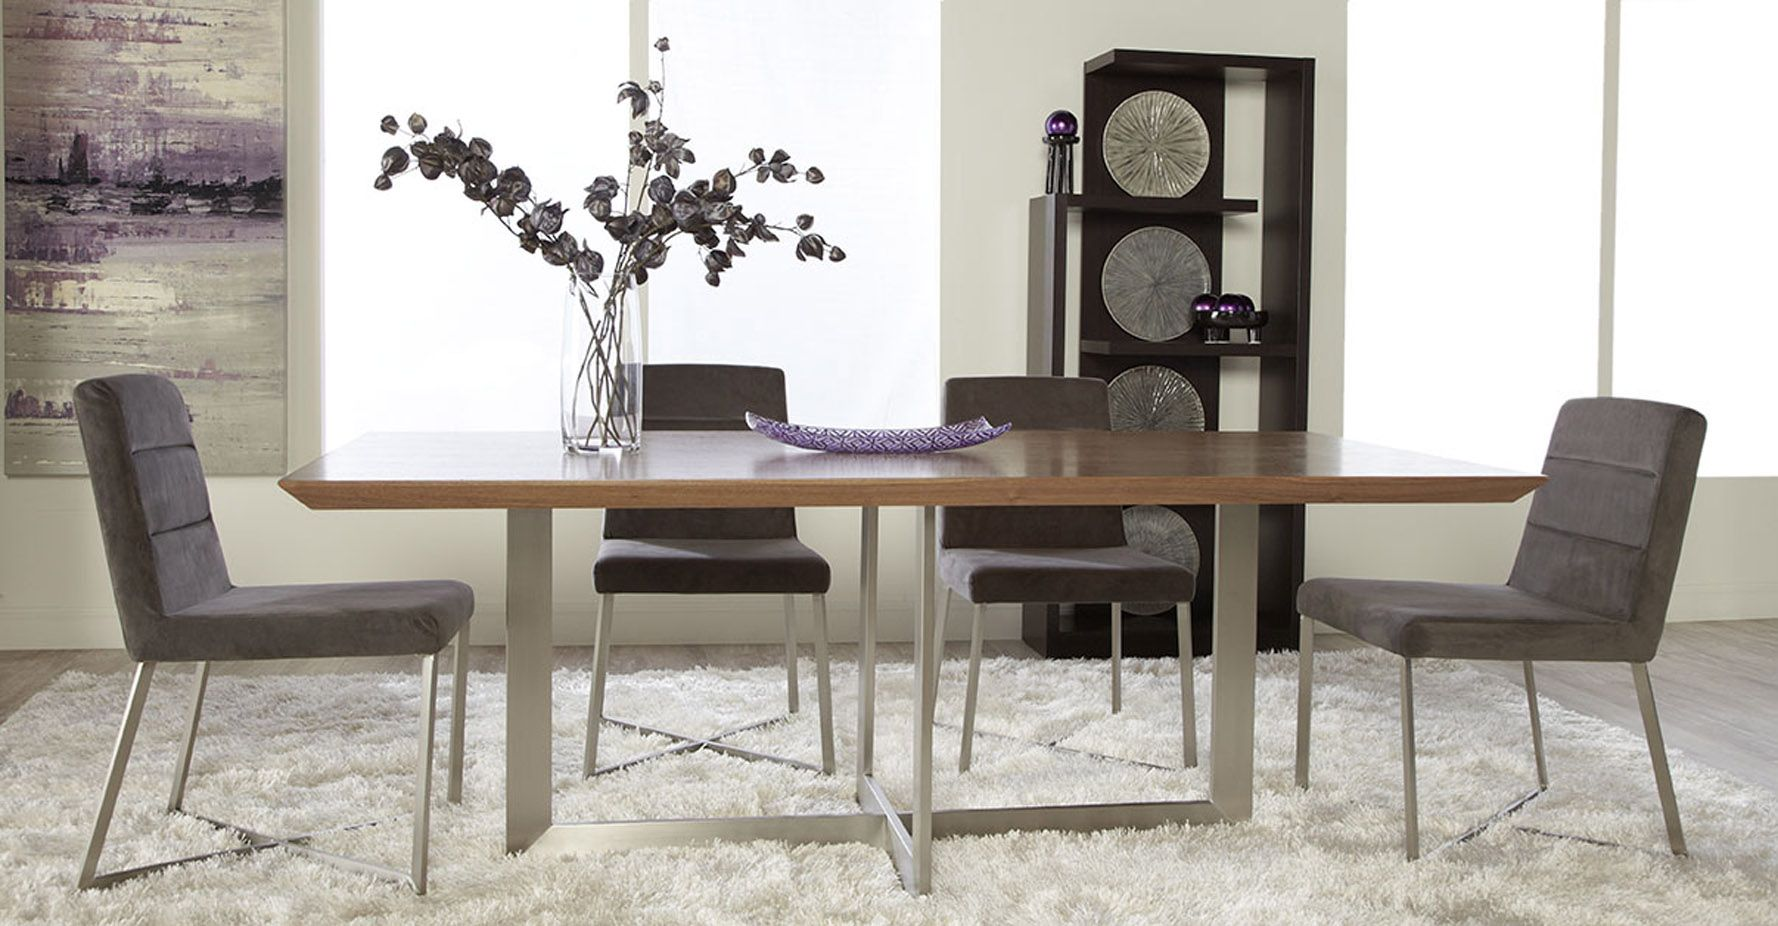 Gnocchi Adjustable Feet Dining Table | Zuri Furniture